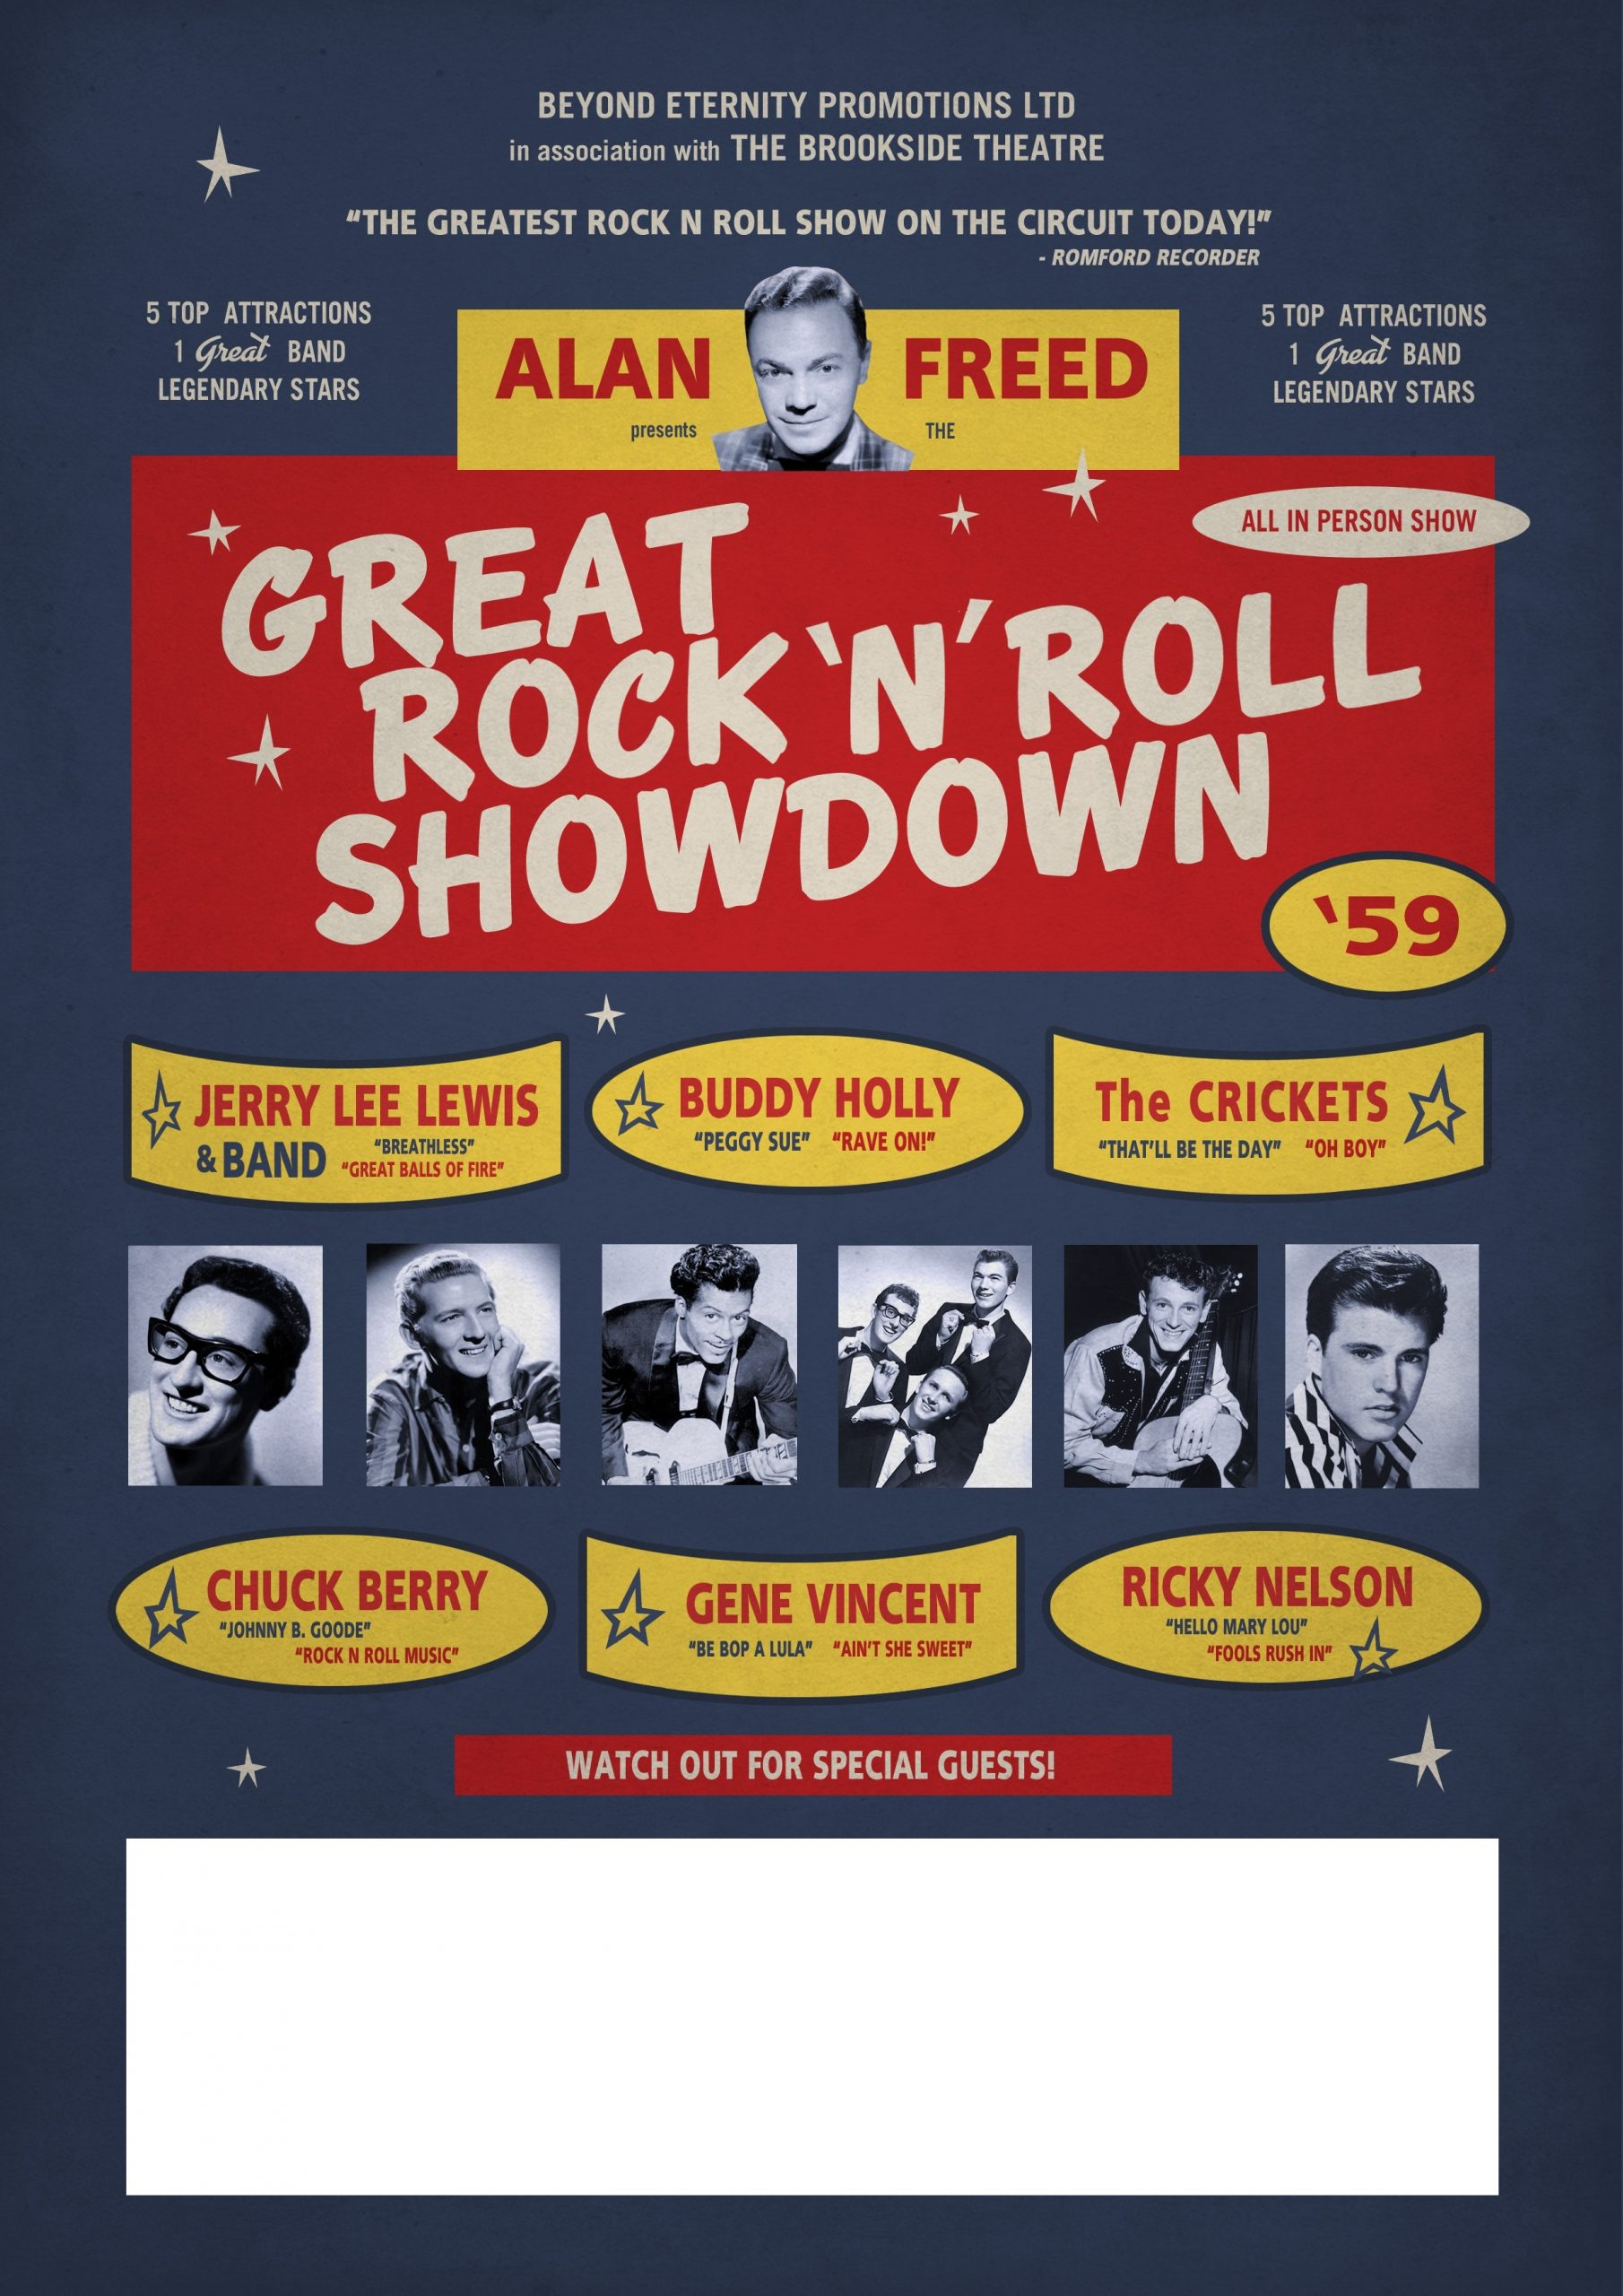 Alan Freed's Great Rock and Roll Showdown